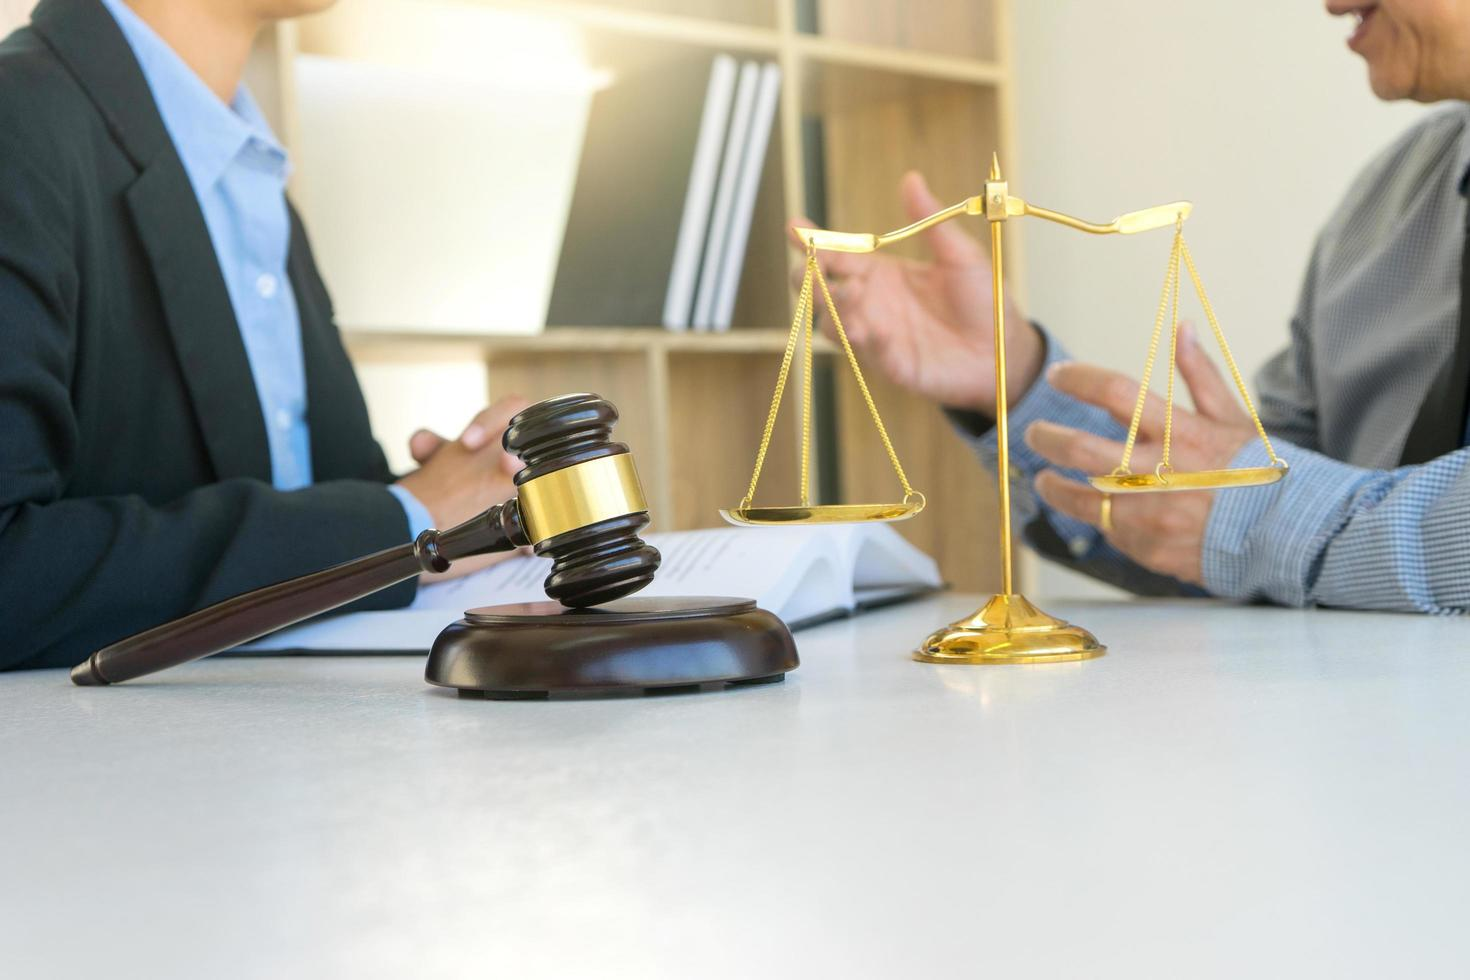 Two business people meet in a law office photo